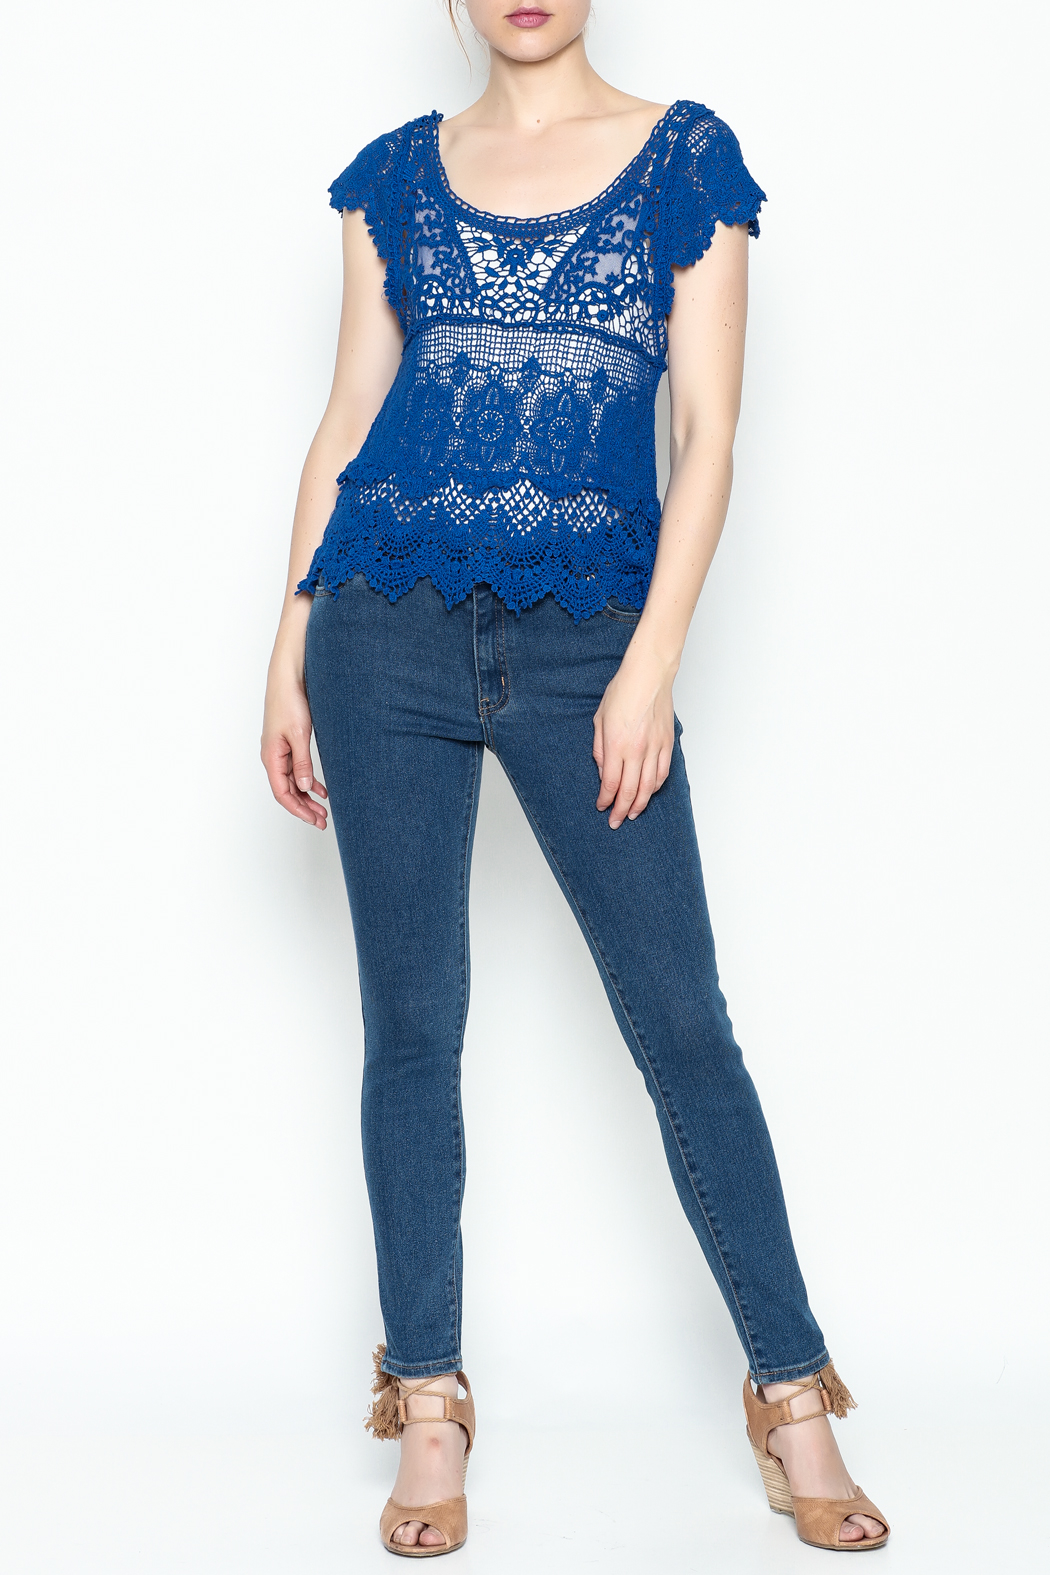 Made on Earth Lace Top - Main Image